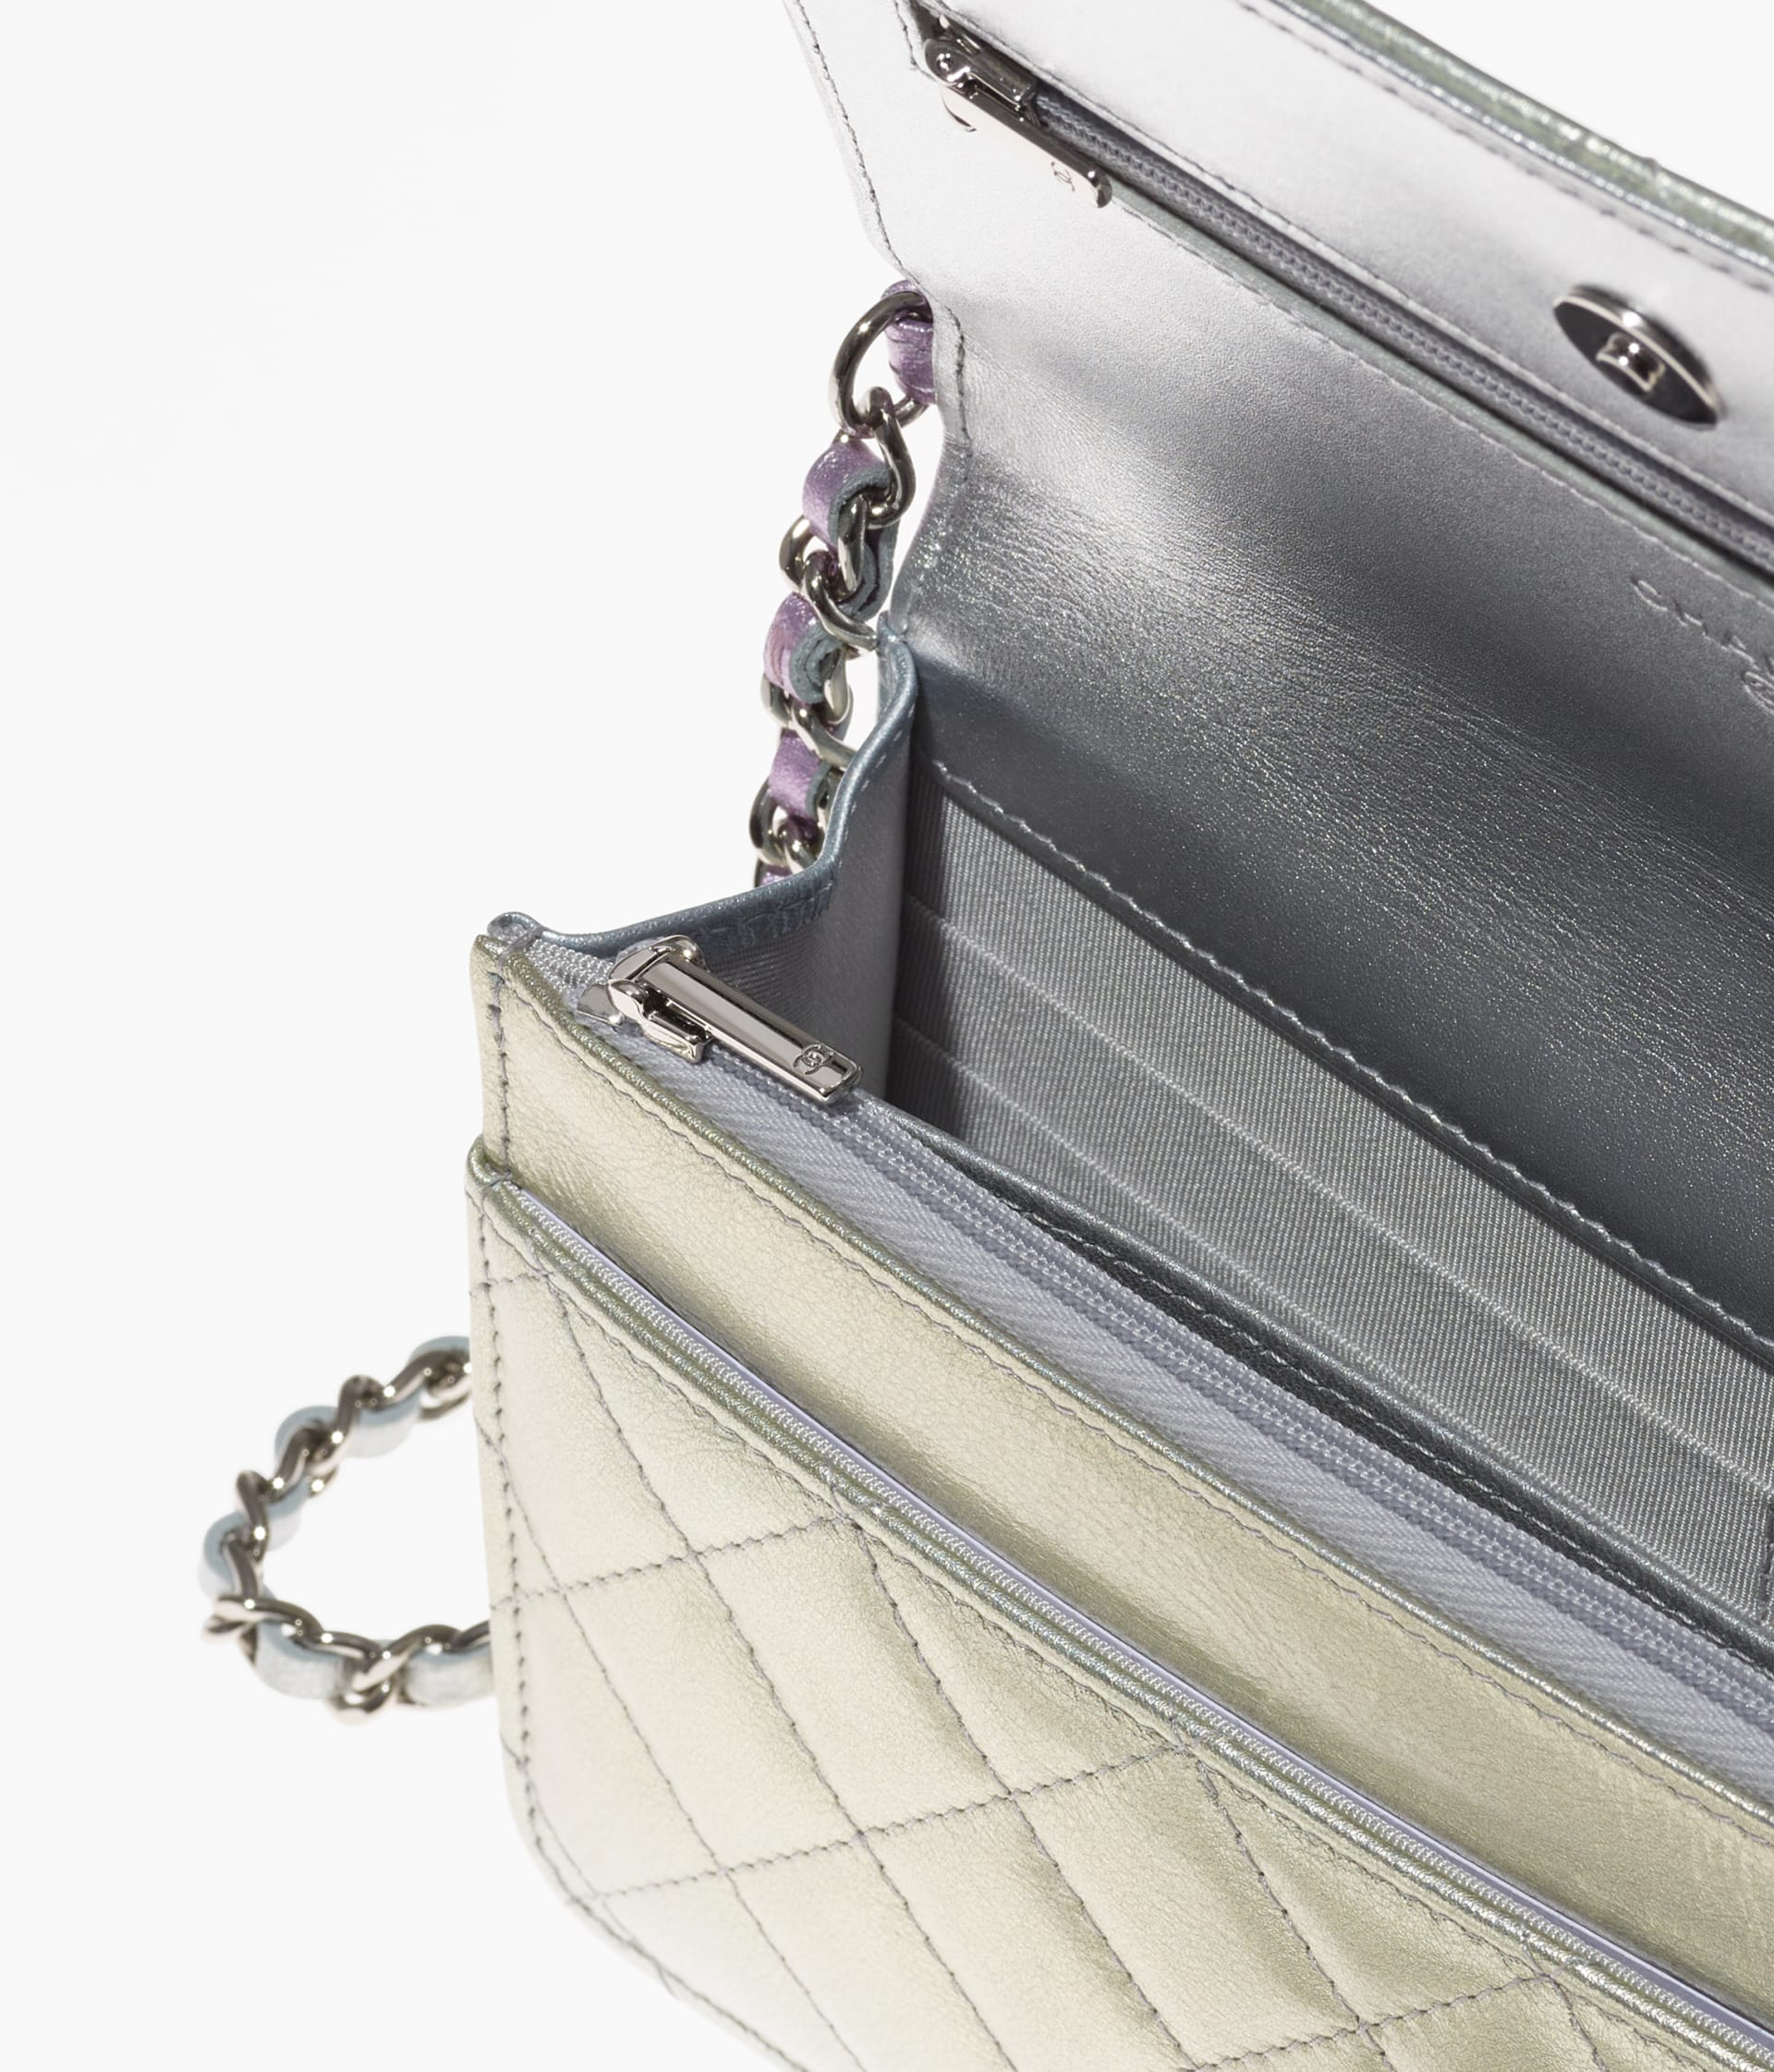 image 2 - Classic Wallet on Chain - Gradient Metallic Calfskin & Gradient Lacquered Metal - Silver, Blue, Yellow and Purple